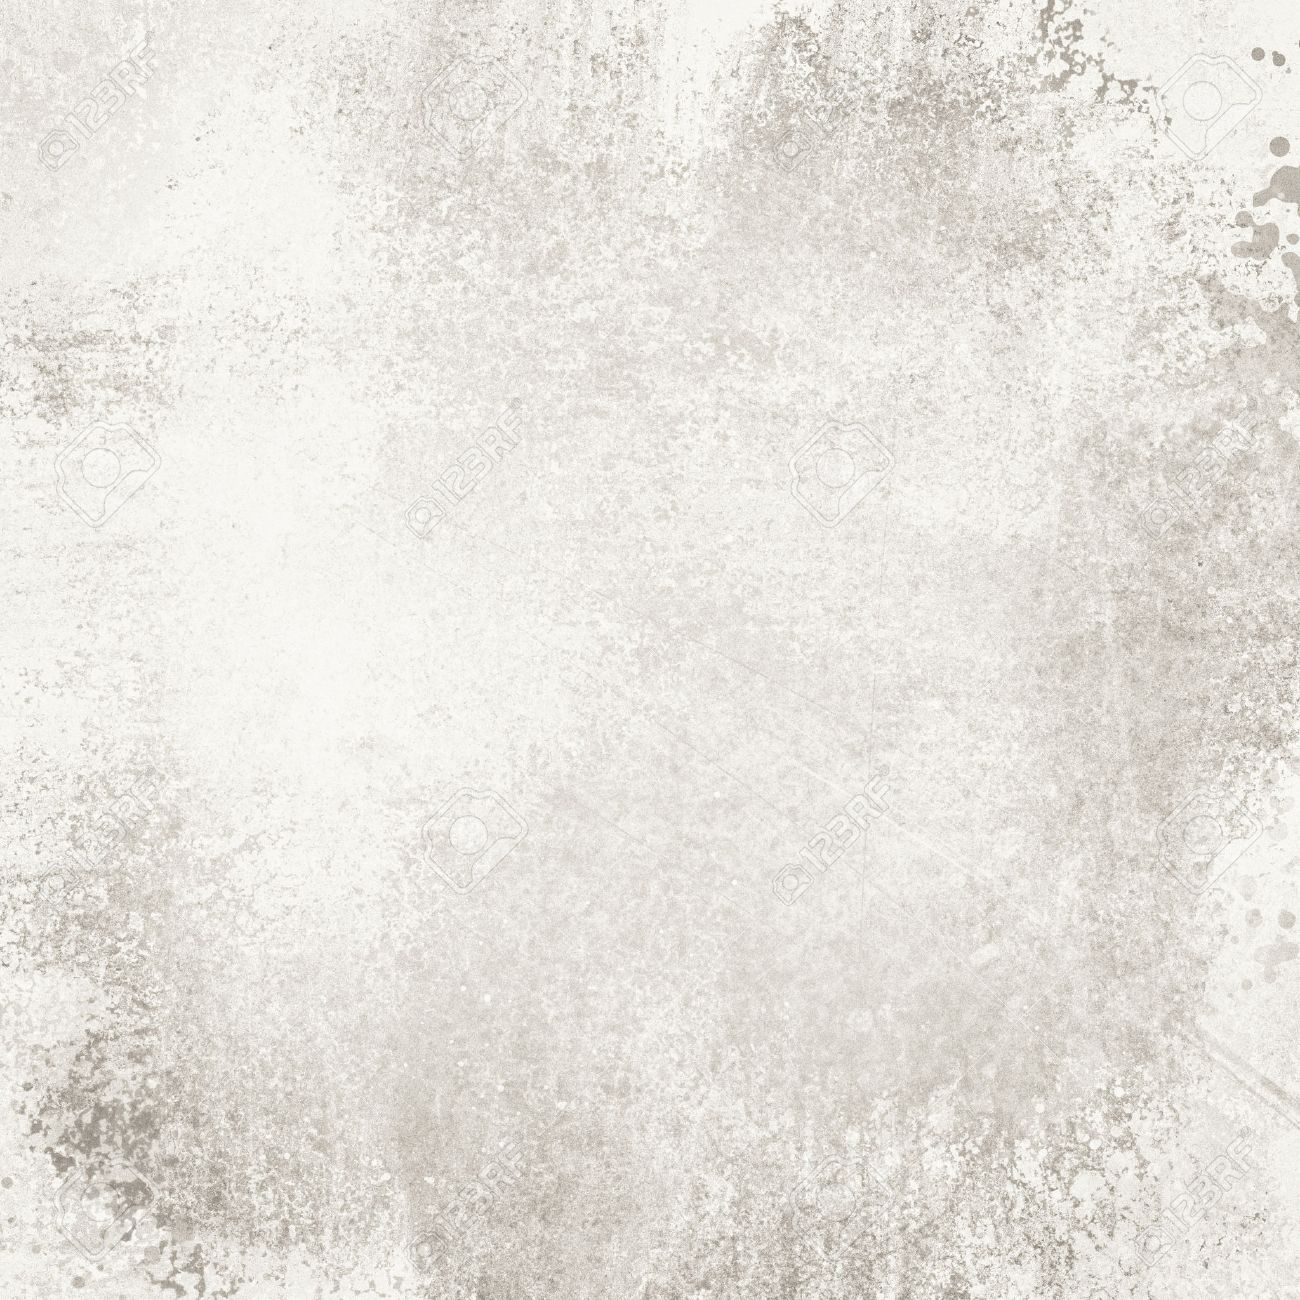 old white paper background with distressed vintage texture, faded sponged gray paint on weathered cement wall concept - 74726657